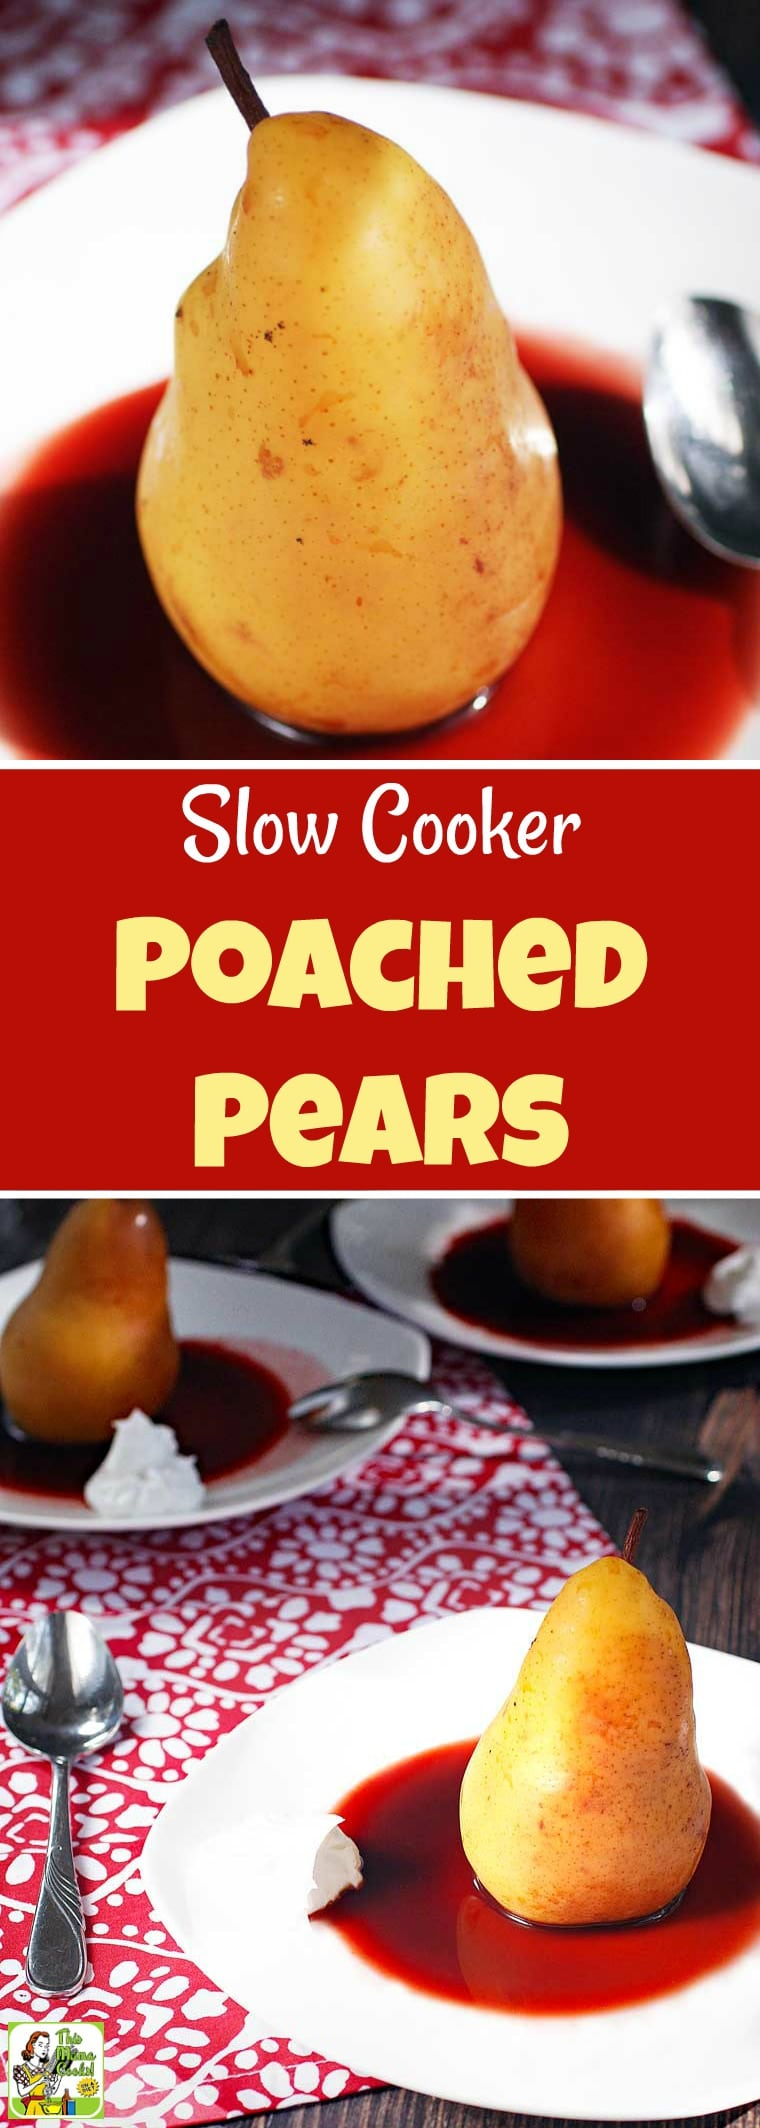 Slow Cooker Poached Pears recipe uses unsweetened cherry juice instead of wine and orange juice and monk fruit sweetener instead of sugar. Served with coconut cream. This dessert recipe is sugar-free, vegan and gluten-free. #sugarfree #sugarfreerecipes #pears #recipe #easy #recipeoftheday #healthyrecipes #glutenfree #easyrecipes #desserts #dessertrecipes #dessertideas #slowcooker #slowcookerrecipes #crockpot #crockpotrecipes #vegan #veganfood #veganrecipes